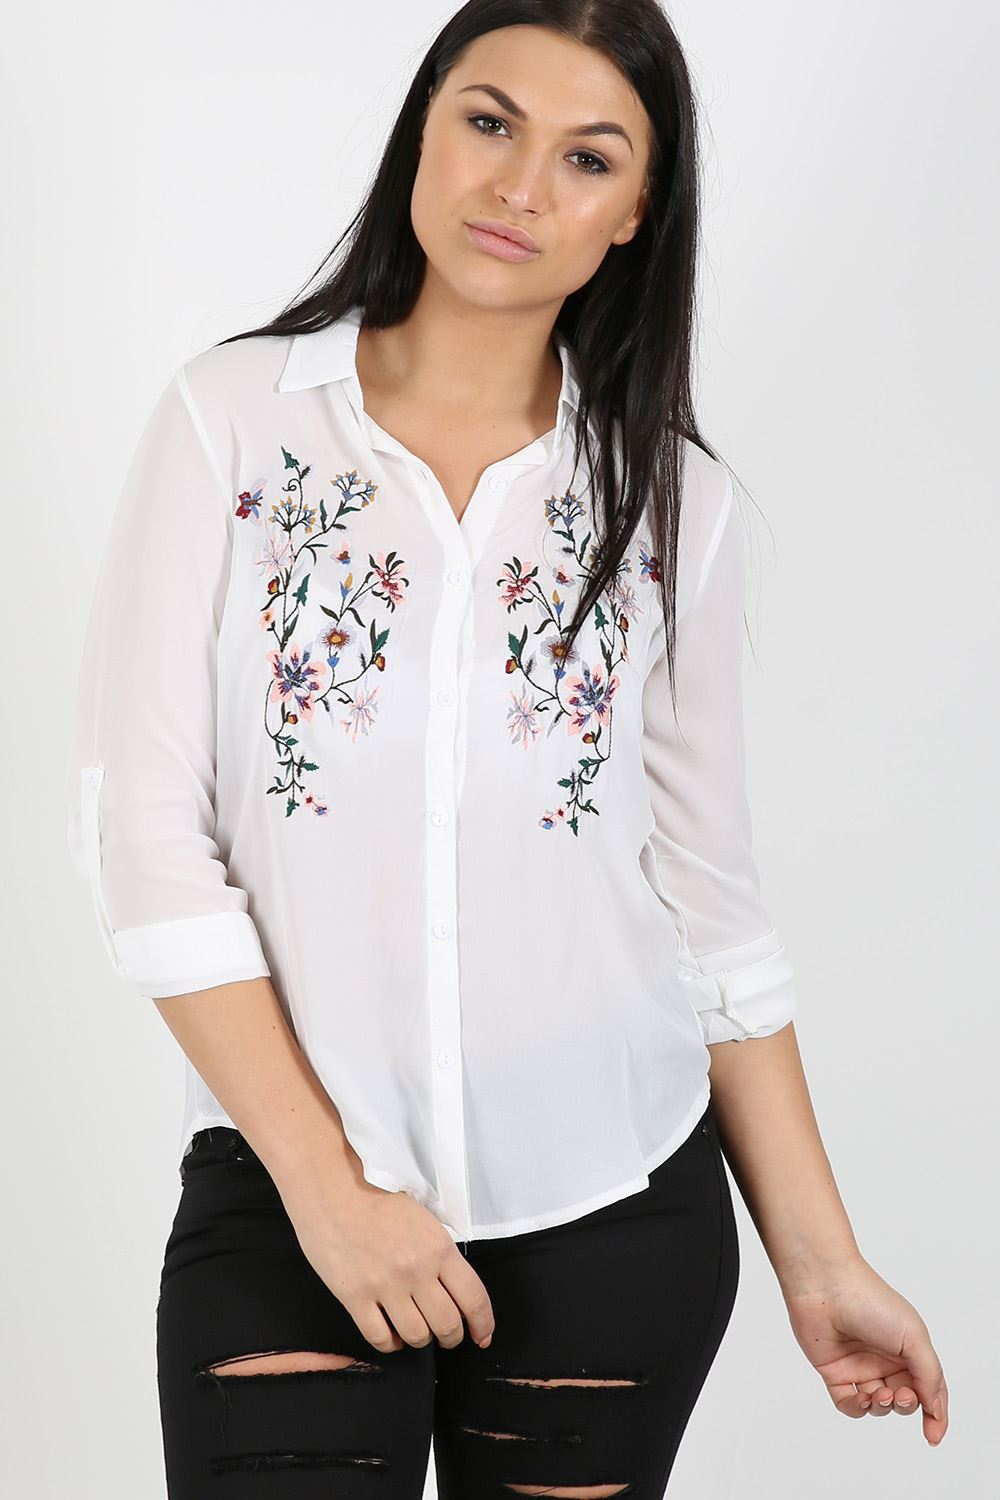 Womens Ladies Chiffon Embroidered Floral Shirt Blouse